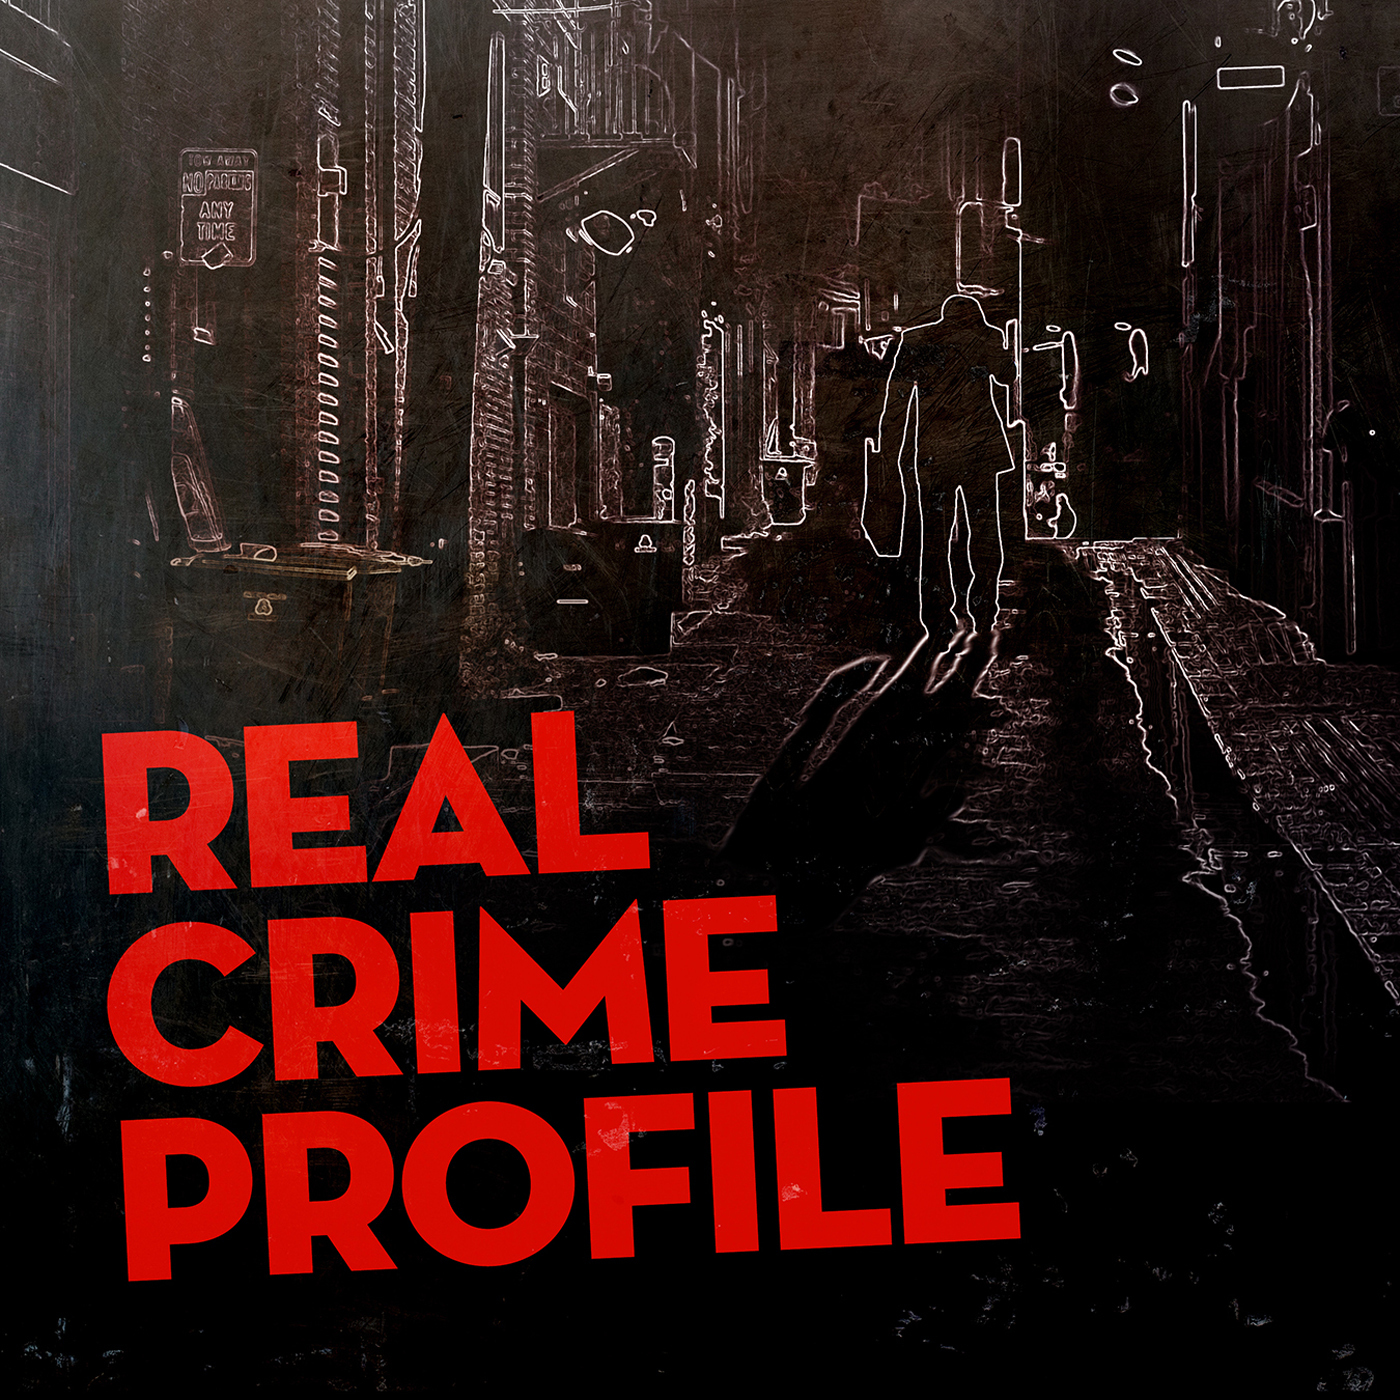 Episode 256 - Profiling Serial and Serious Domestic Violence Perpetrators & Stalkers